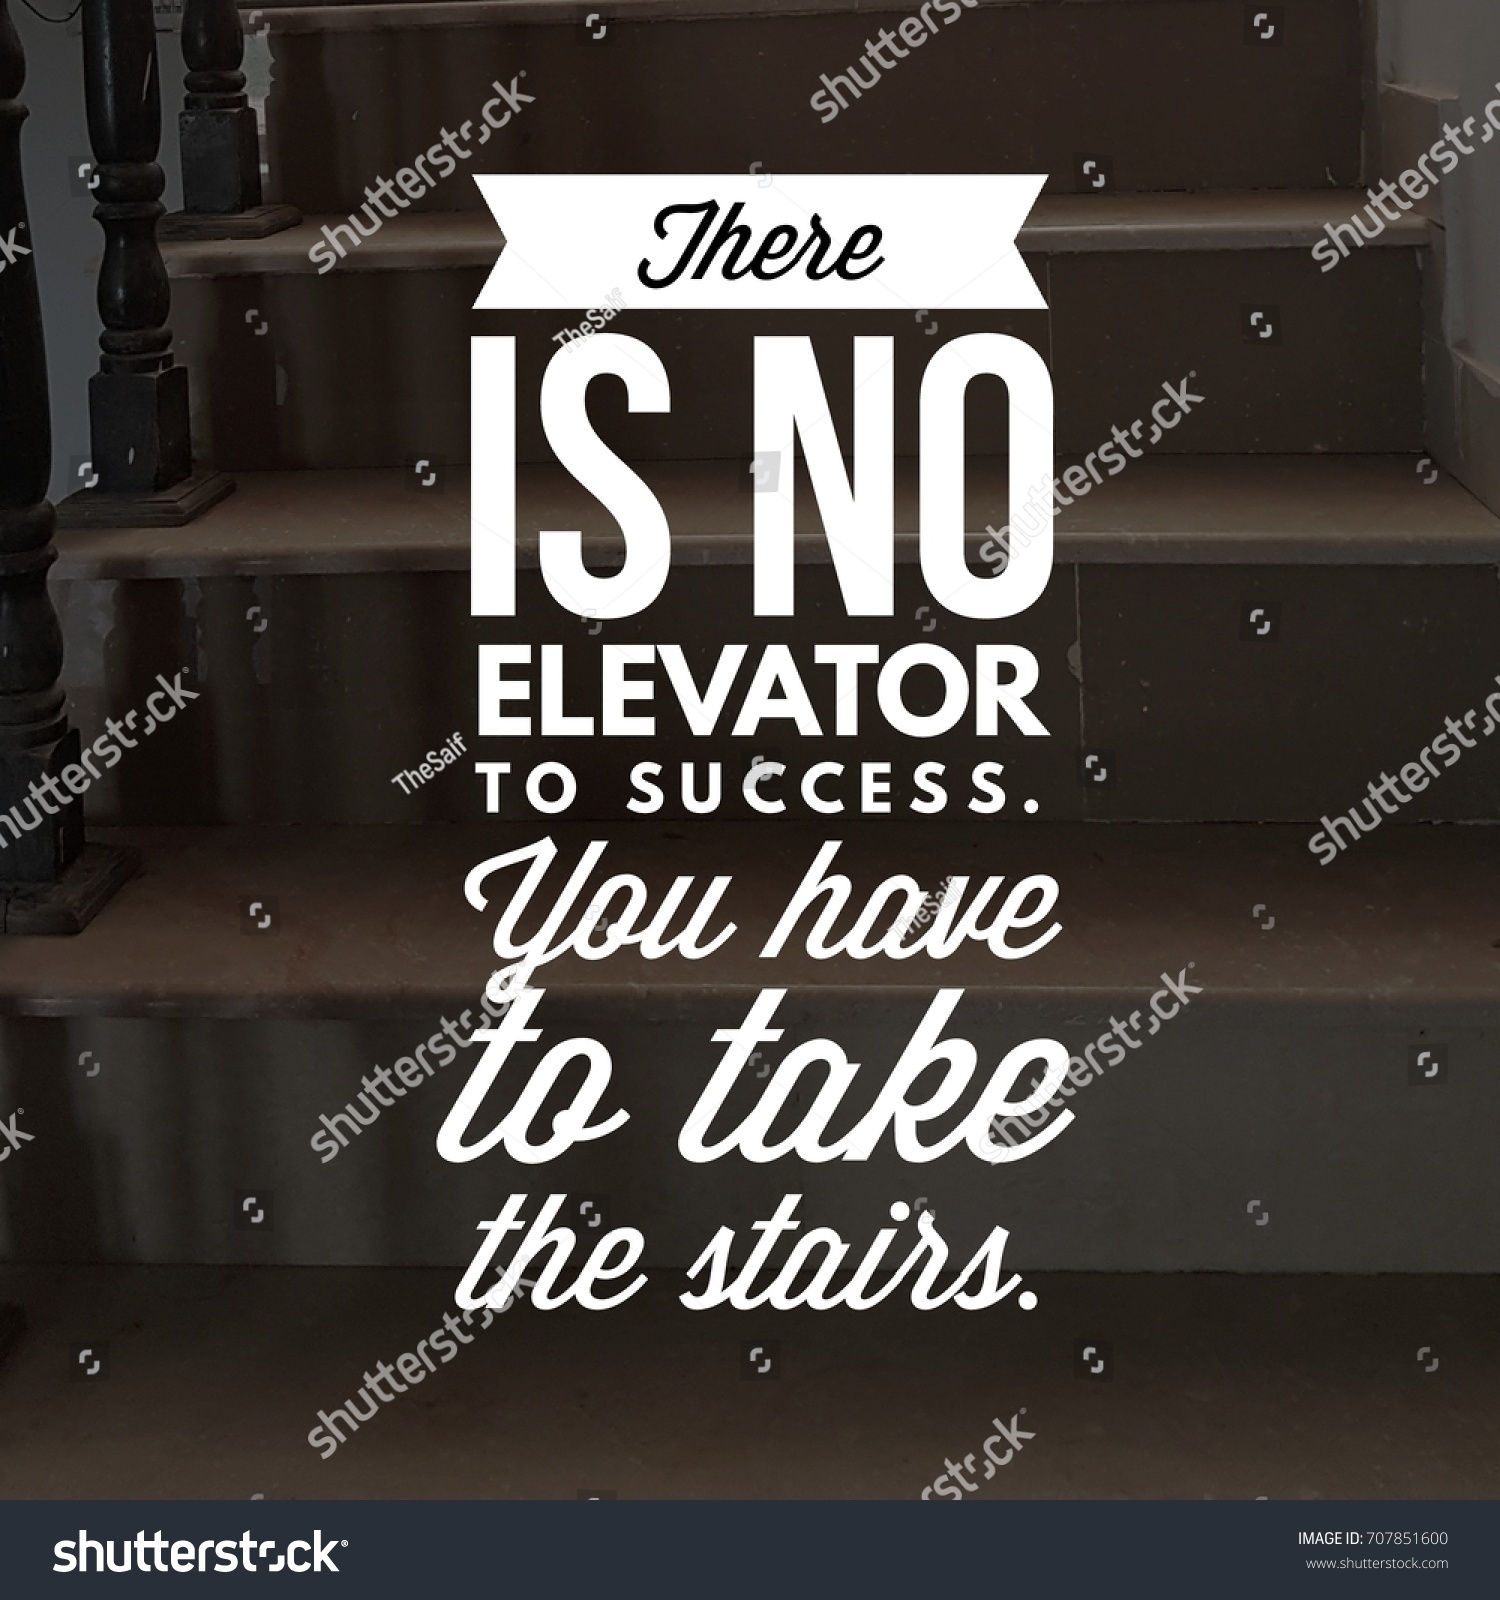 Motivational Quotes For Success In Life There No Elevator Success You Have Stock Photo 707851600